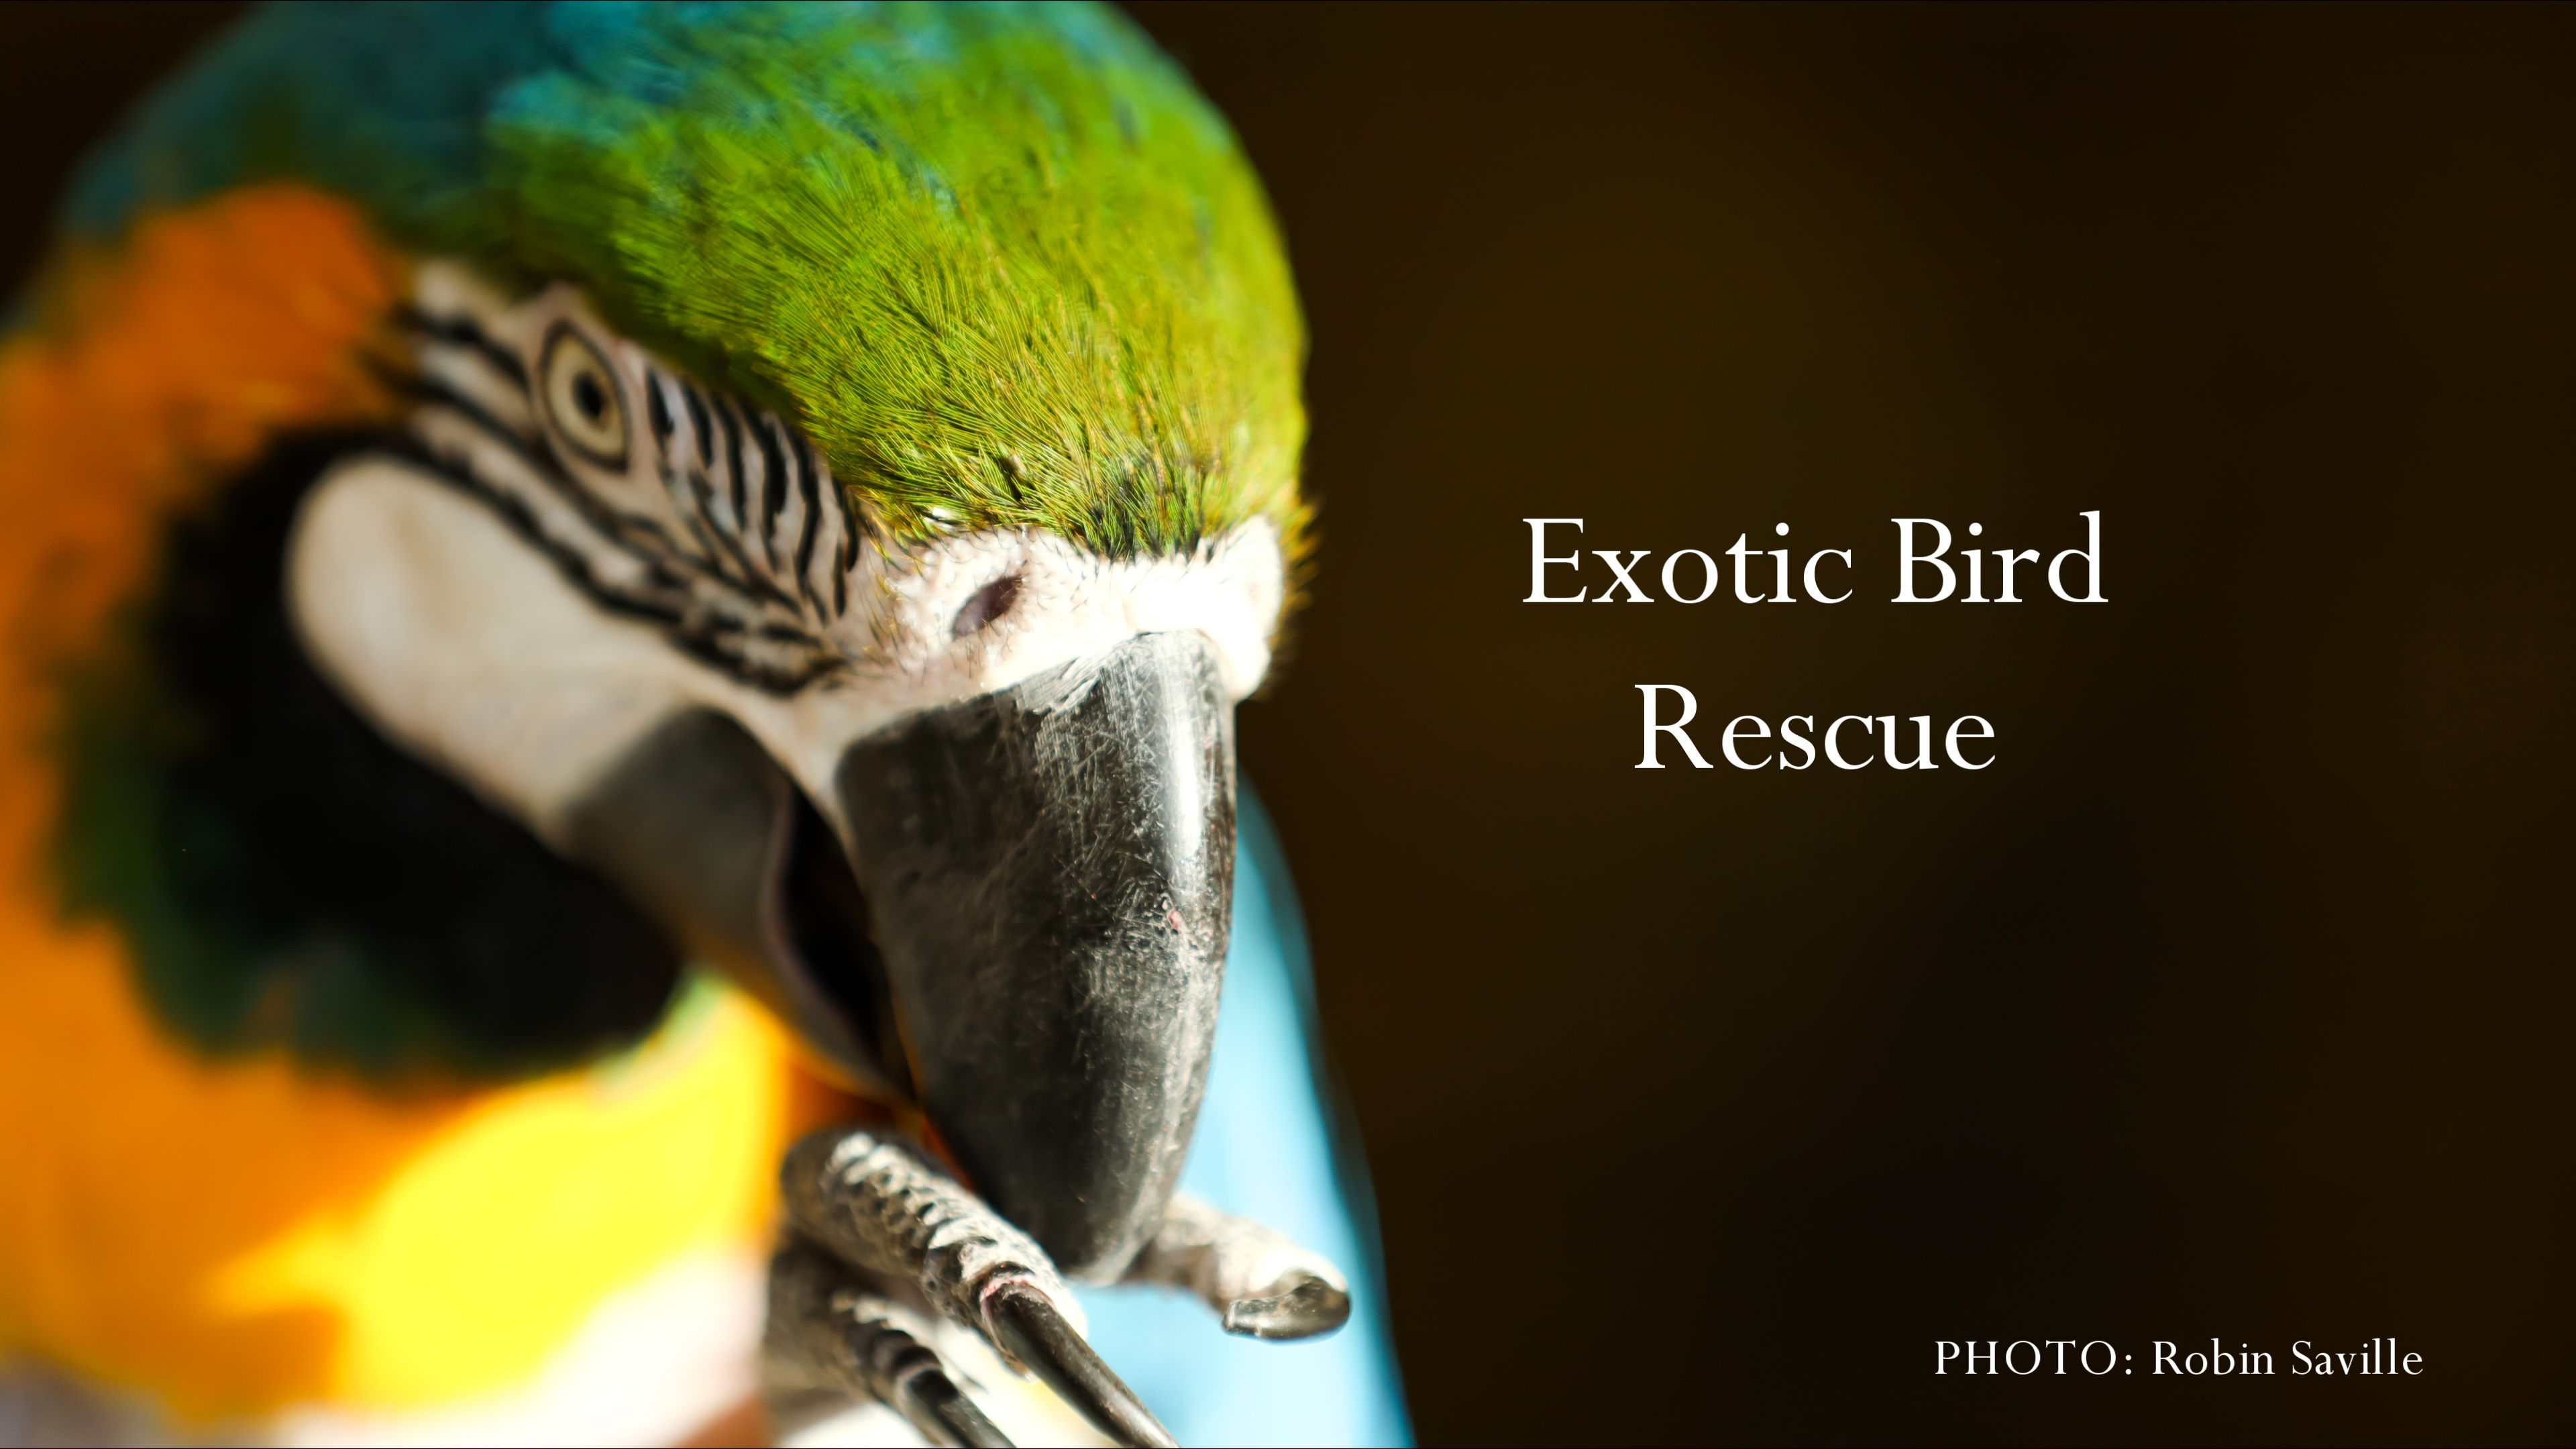 Exotic Bird Rescue